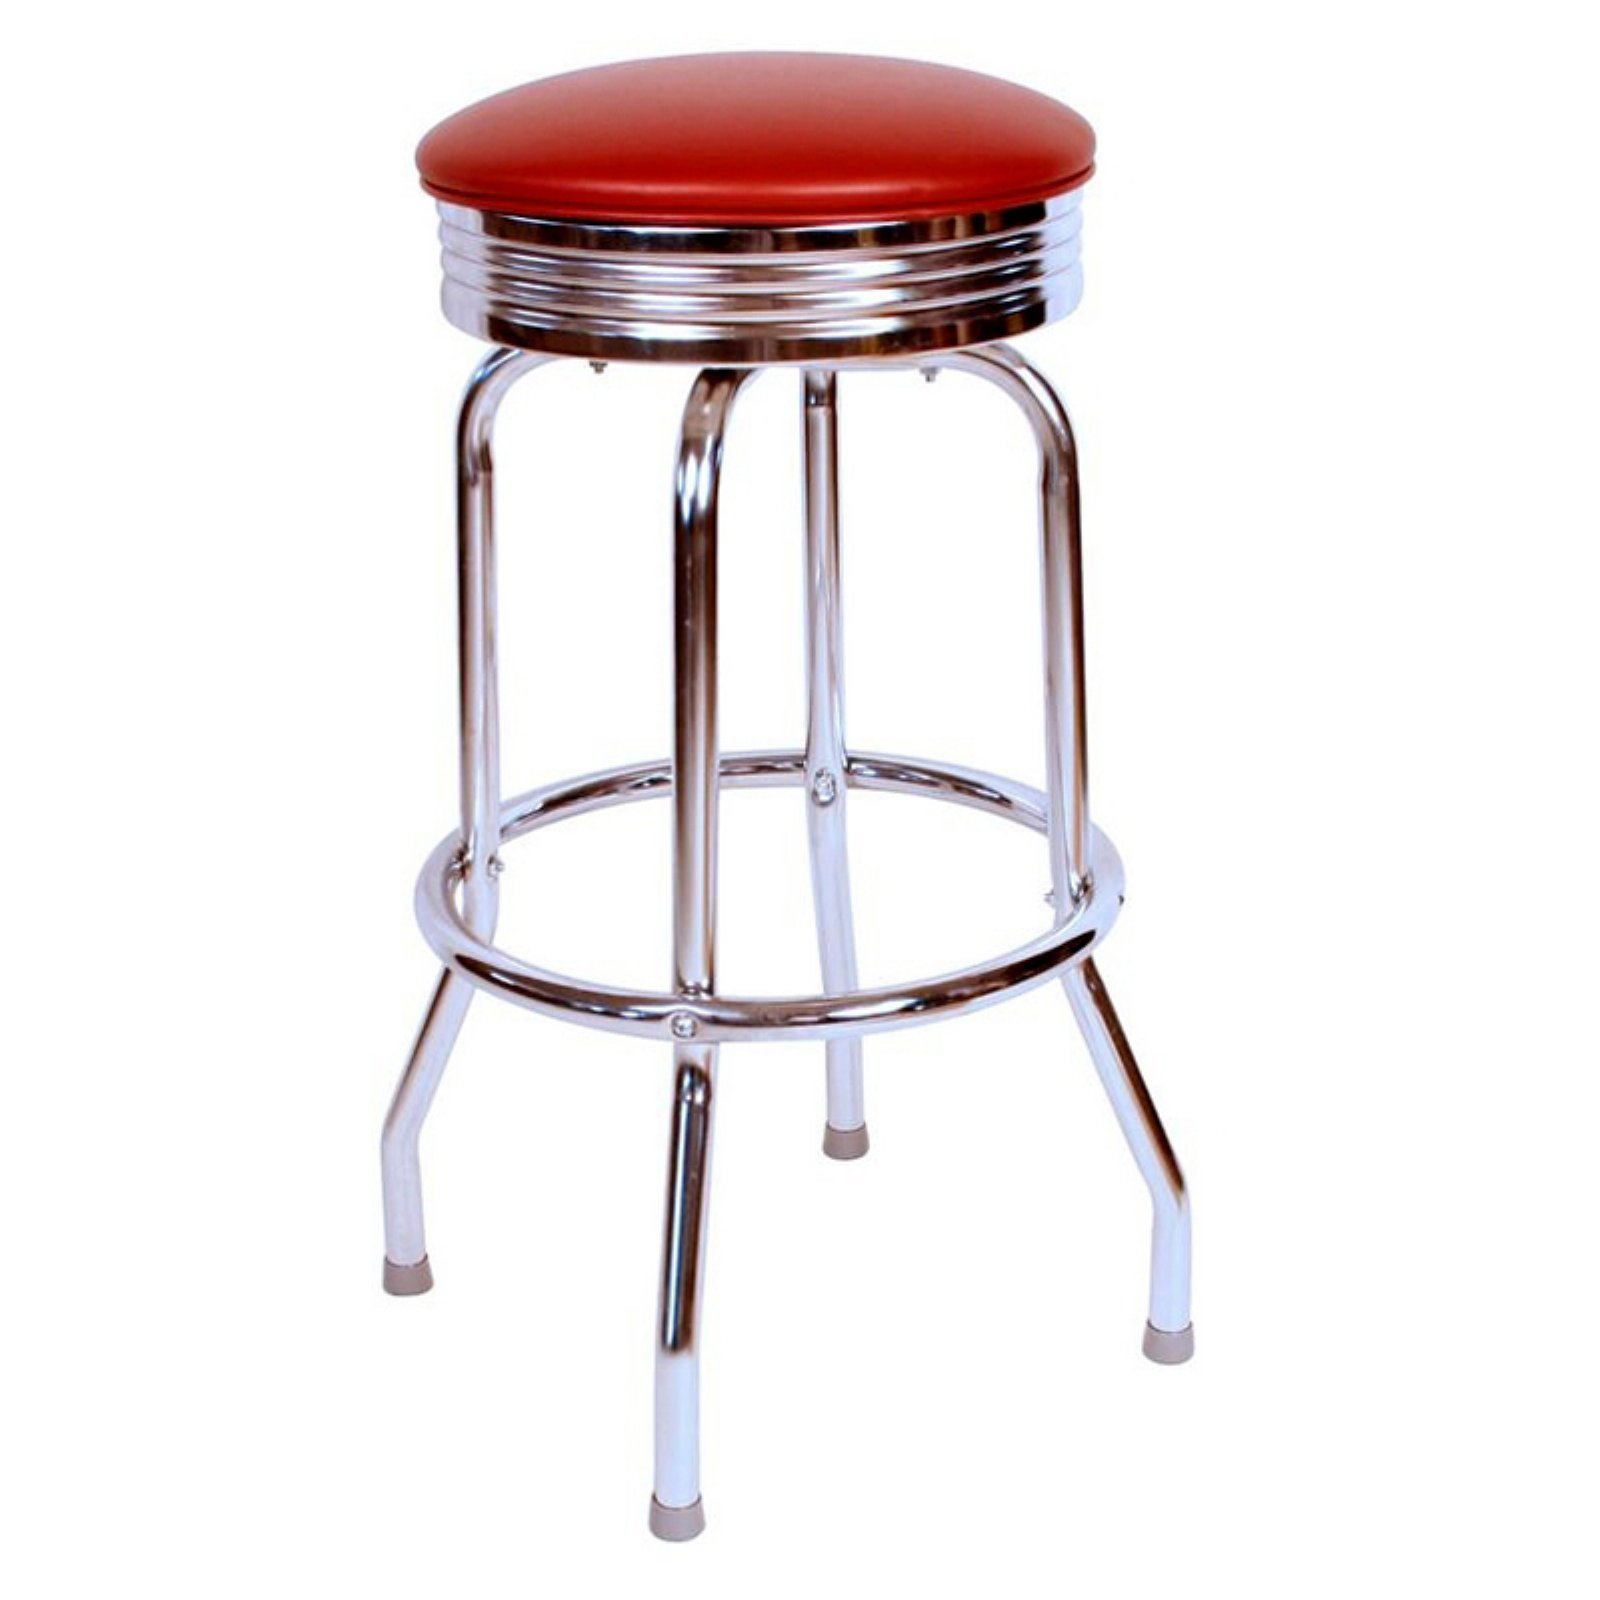 Richardson Seating Floridian 24 In Backless Swivel Counter Stool